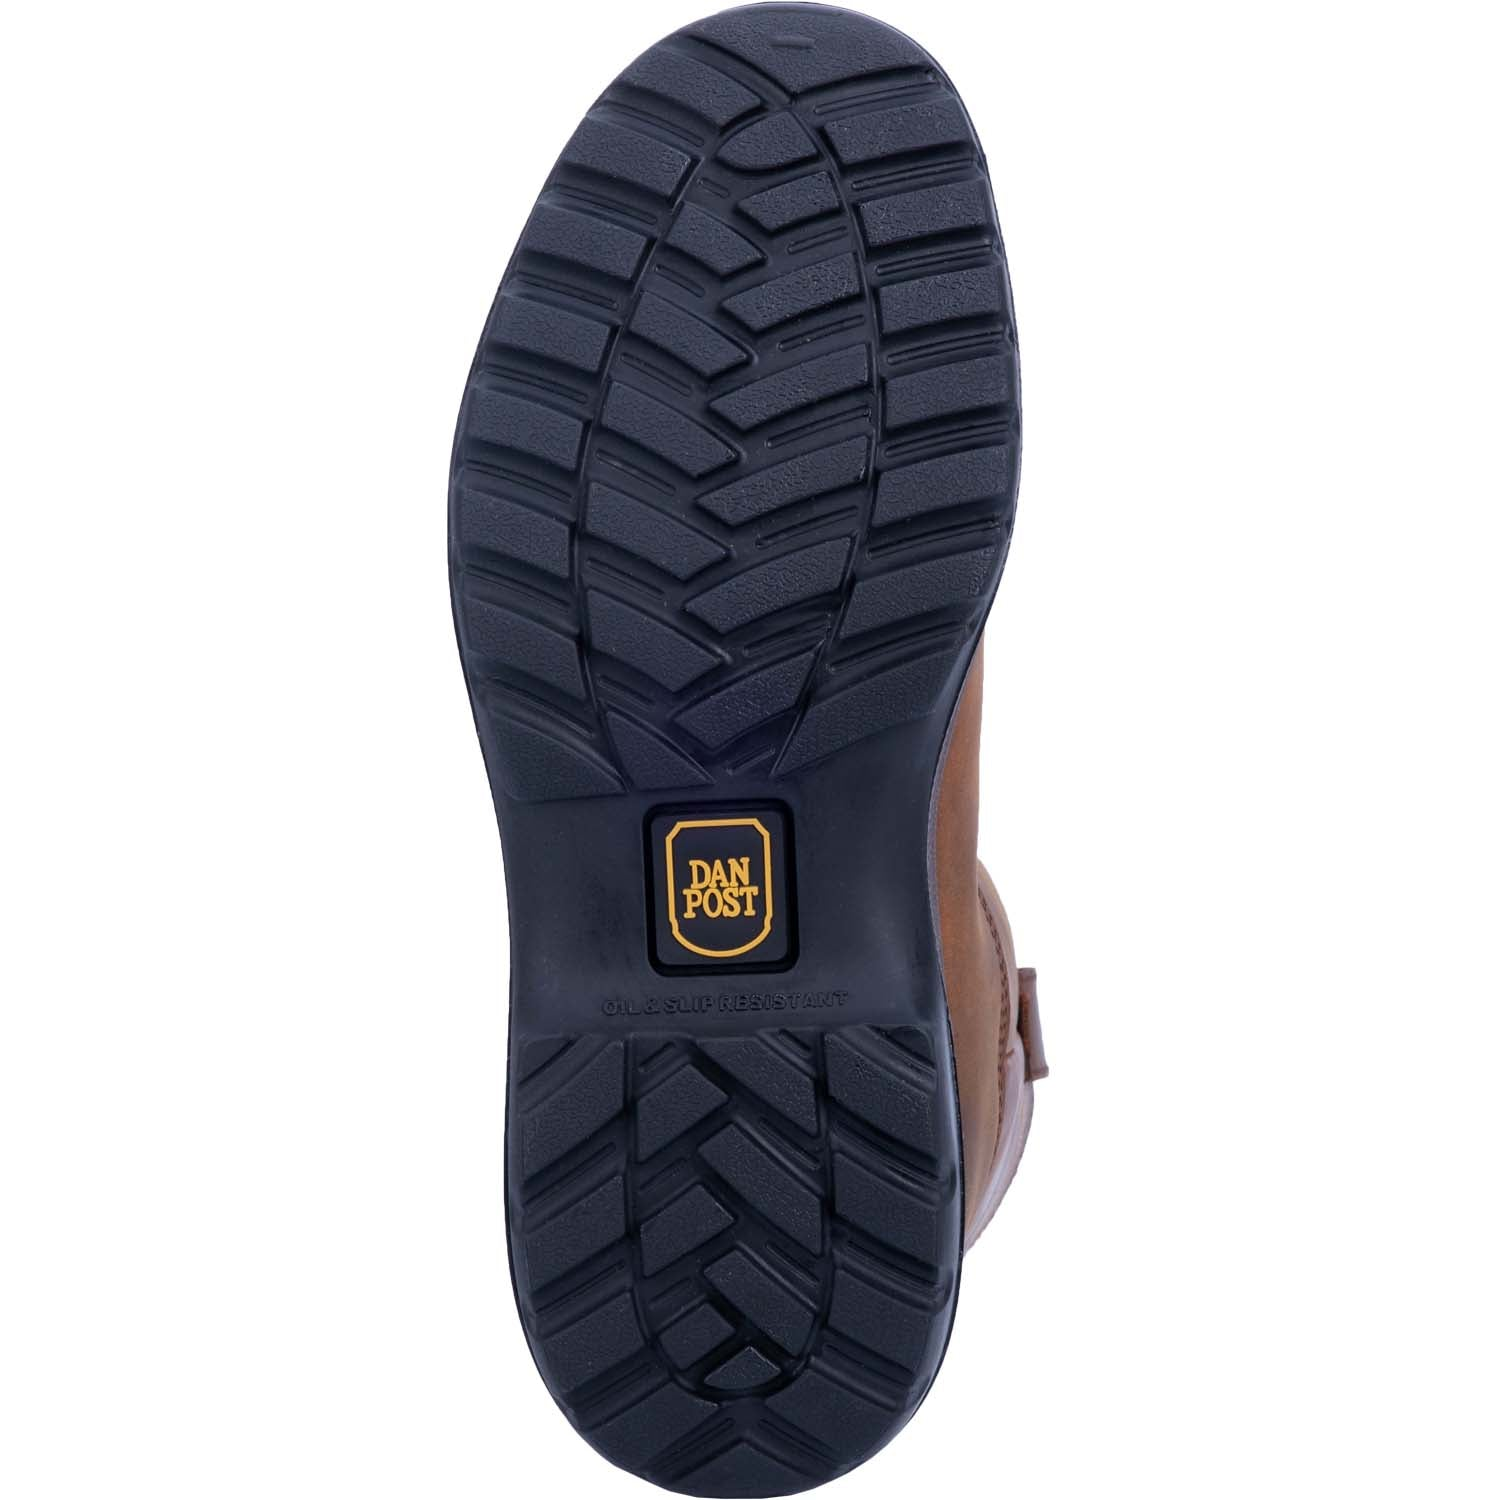 CUMMINS-WATERPROOF STEEL TOE 13239212605482